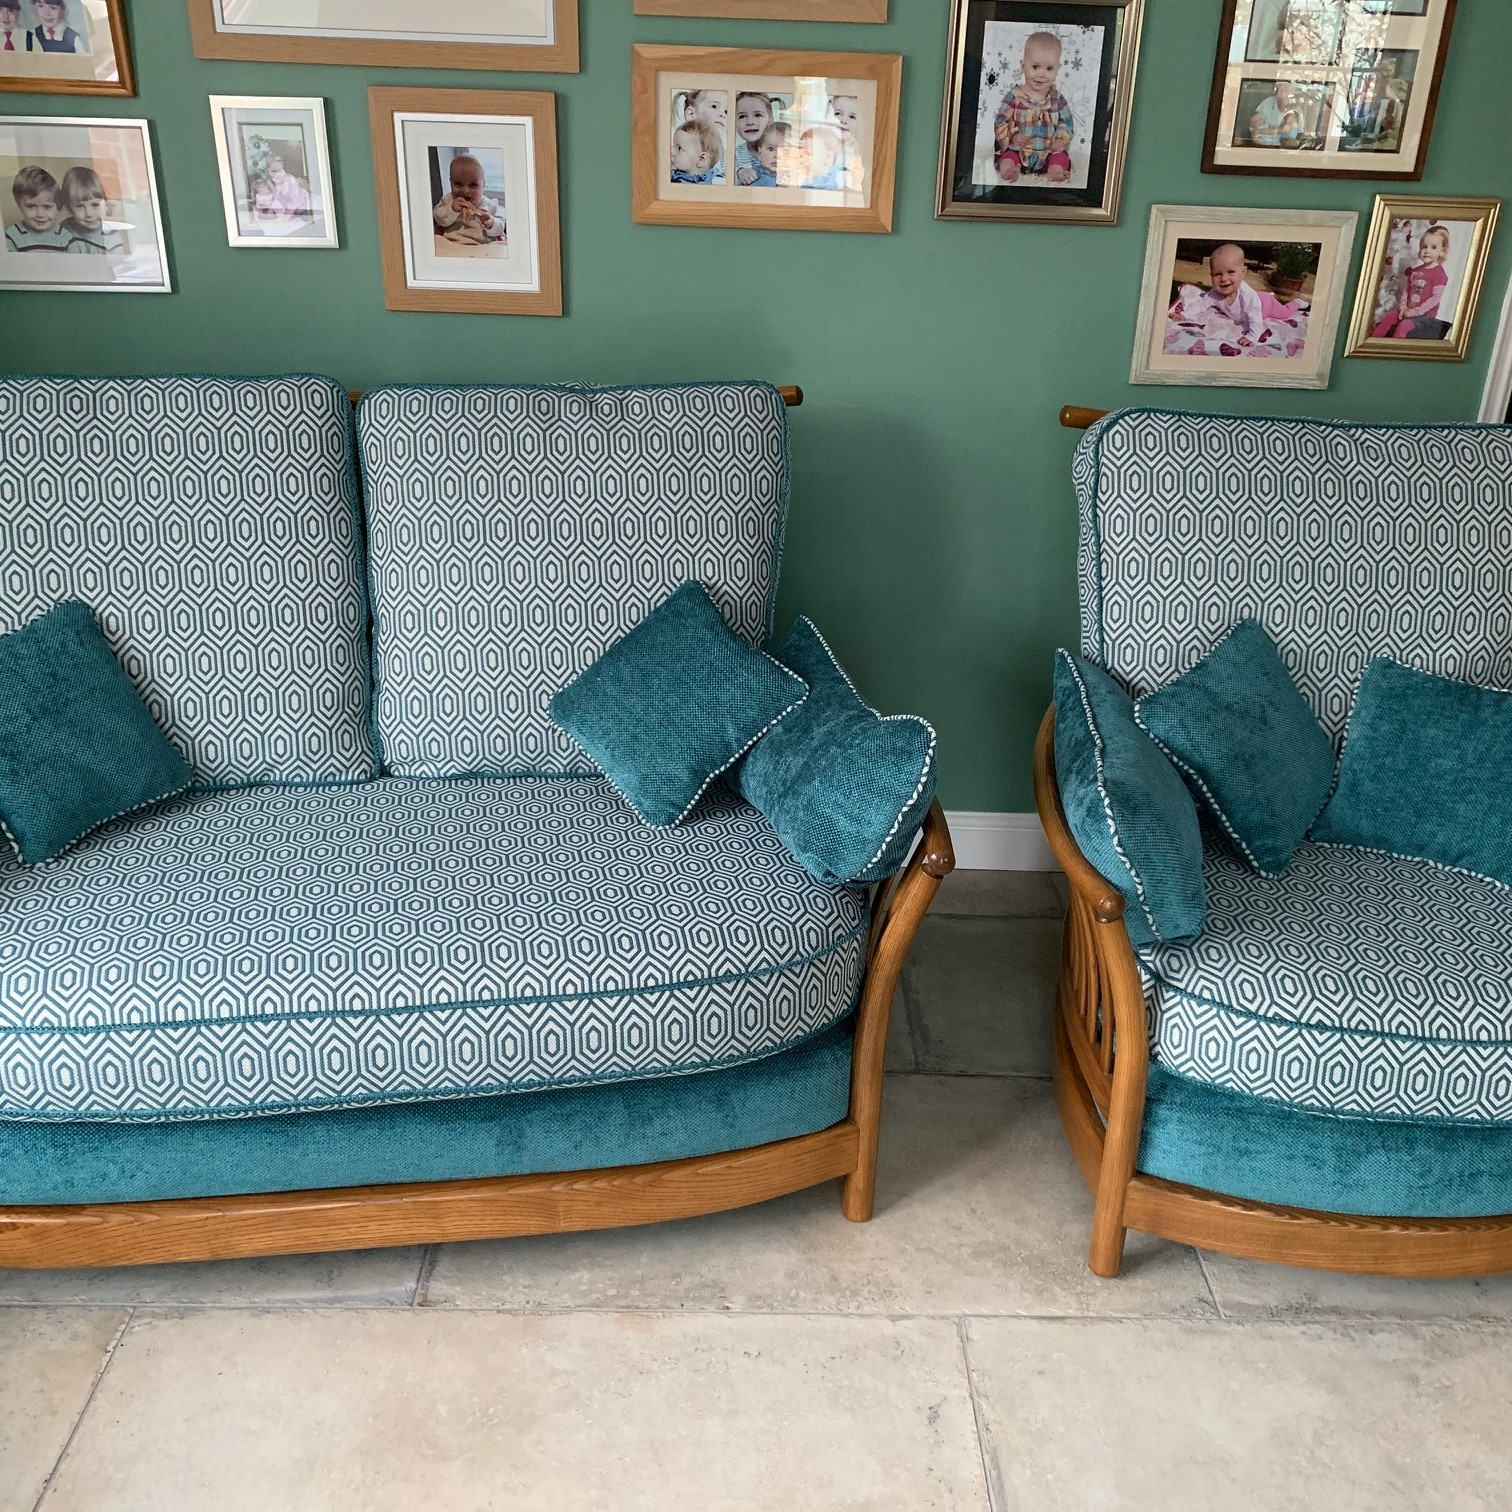 Ercol furniture and cushions recovered